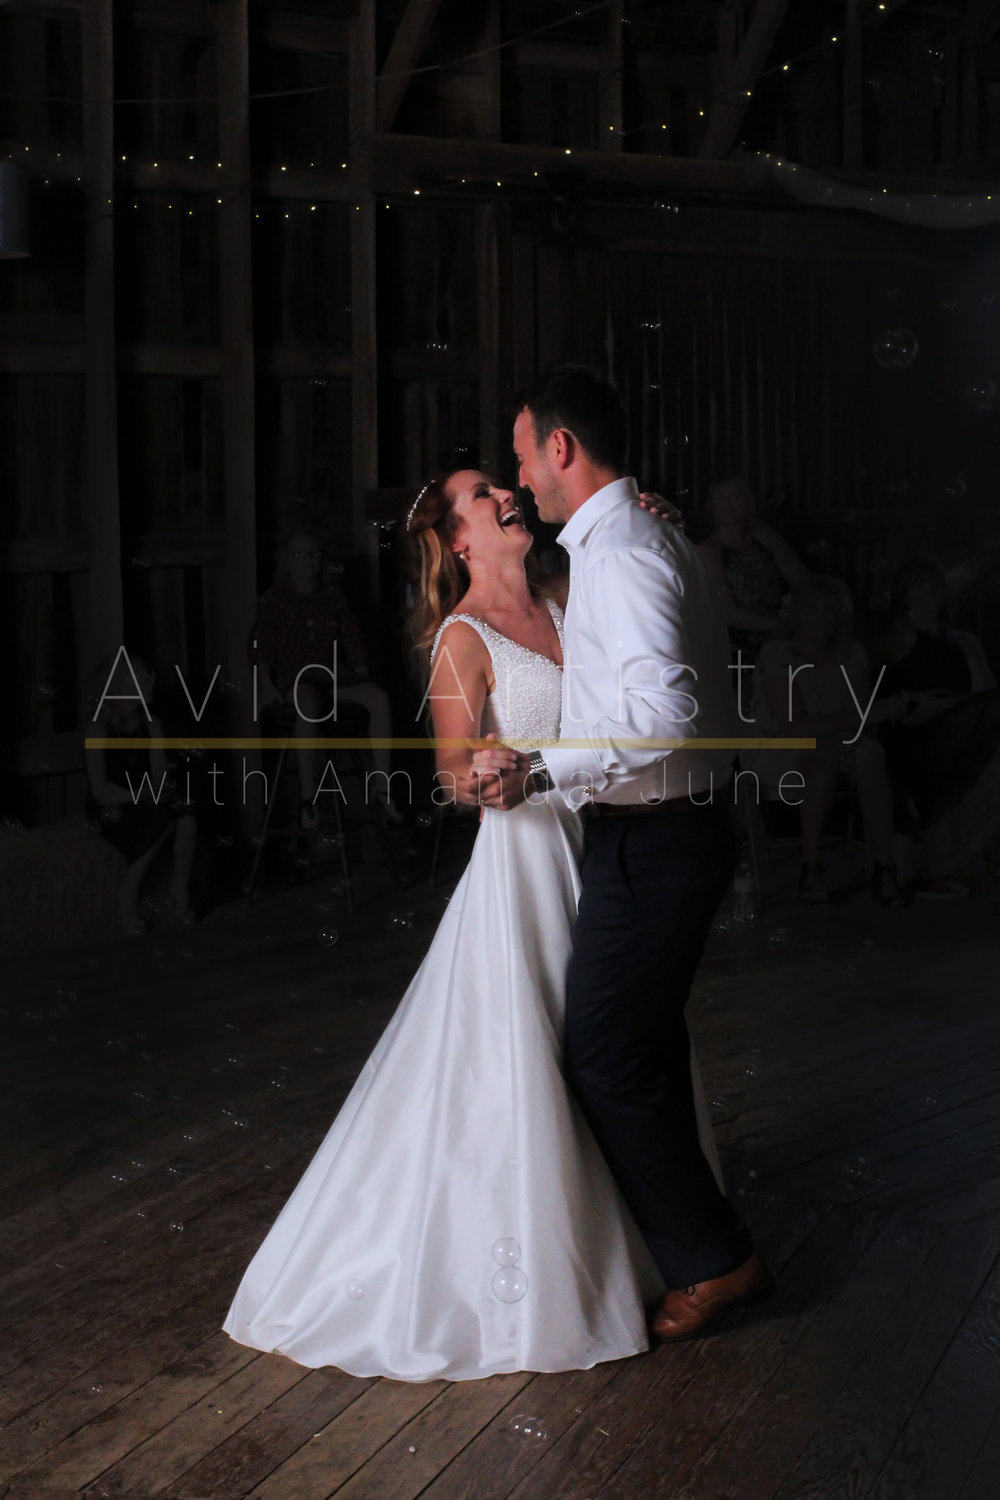 Wedding Photographer in Wichita, Ks. Avid Artistry